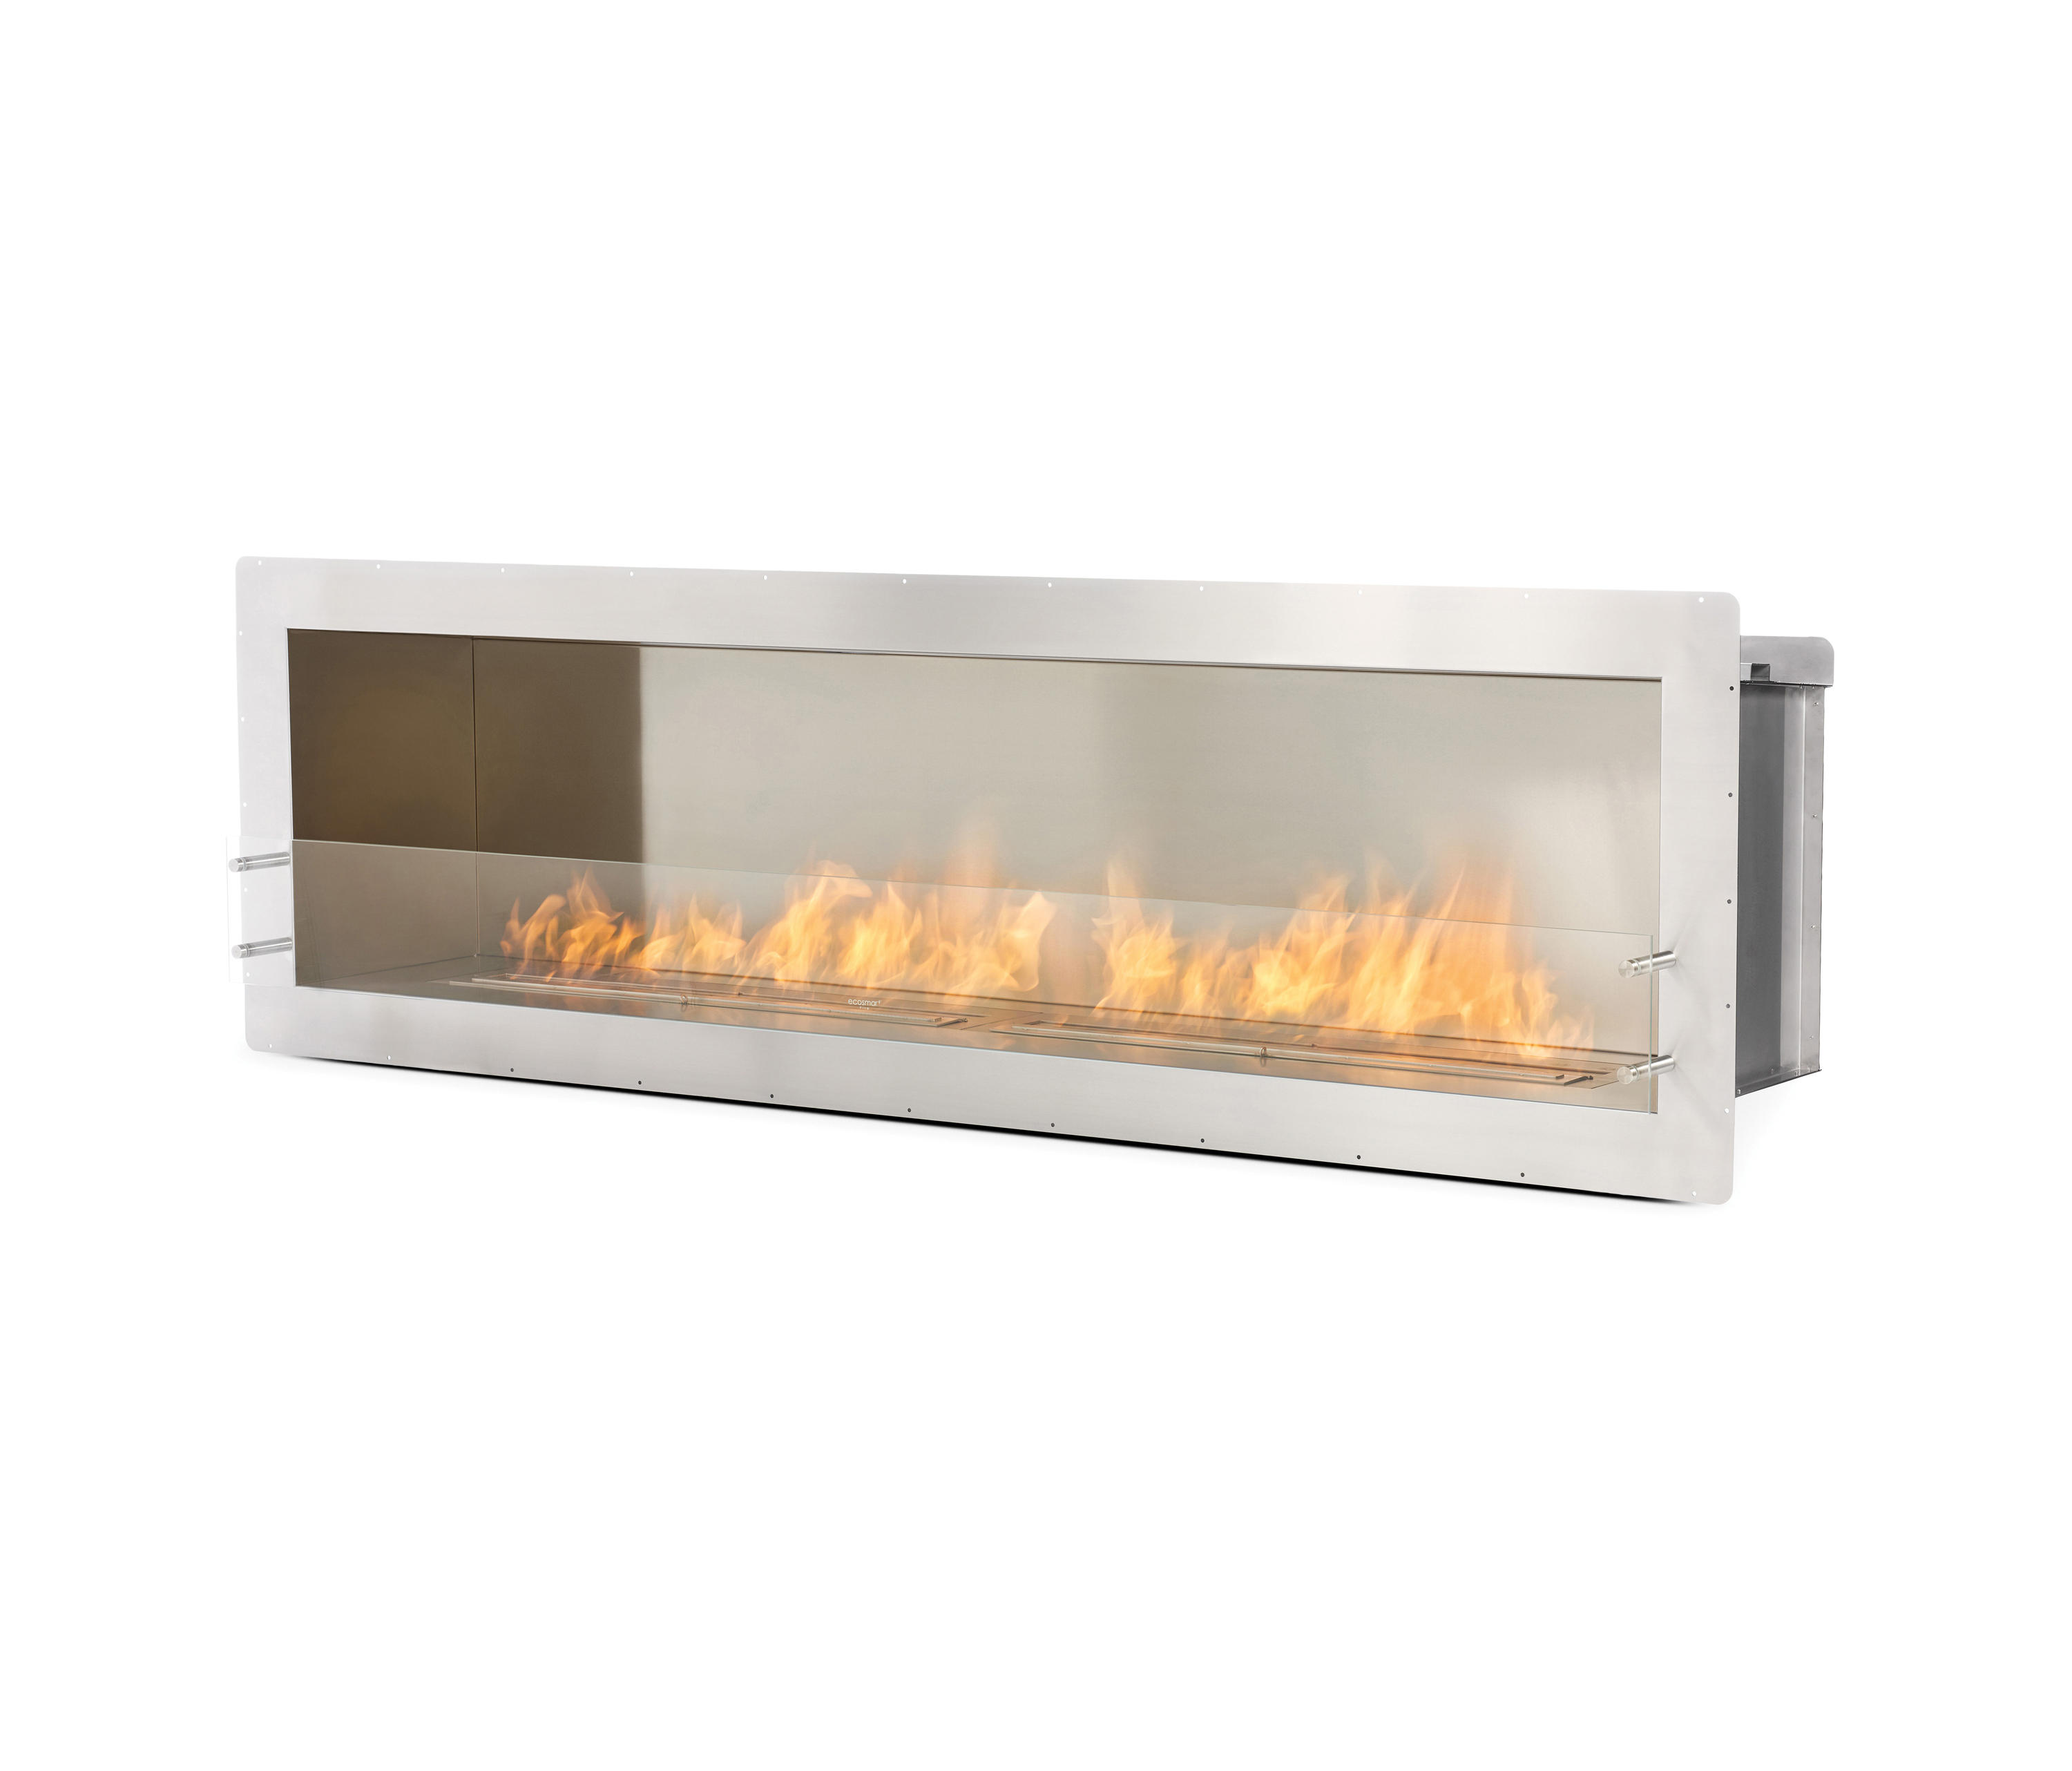 firebox 2100ss ventless ethanol fires from ecosmart. Black Bedroom Furniture Sets. Home Design Ideas